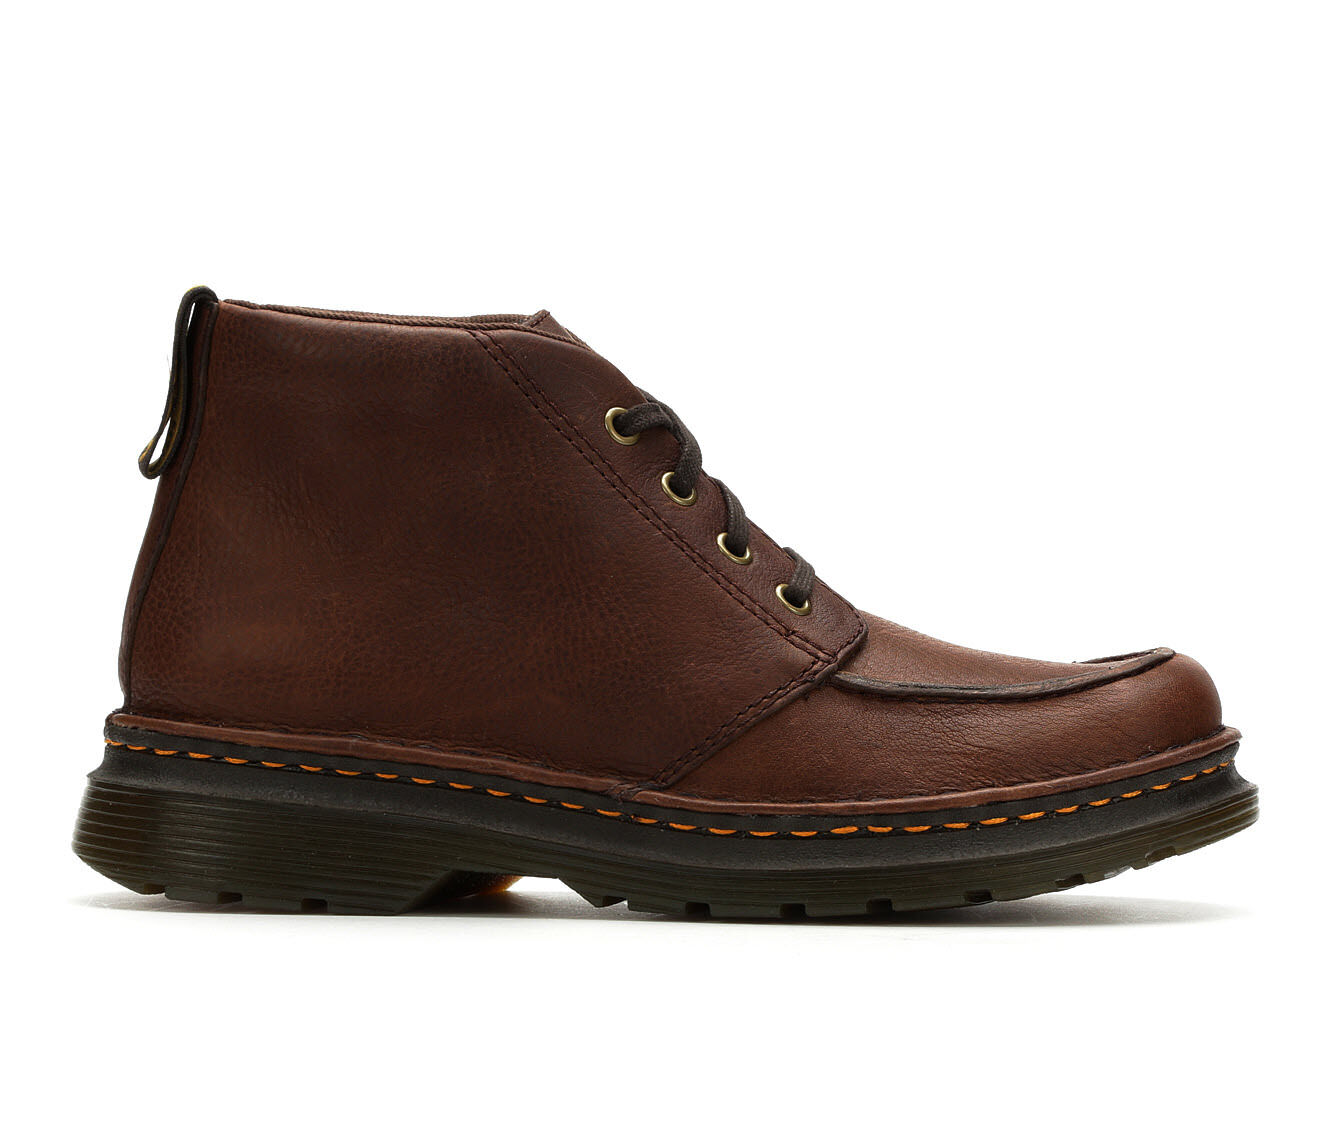 Men's Dr. Martens Austin Boots Dark Brown